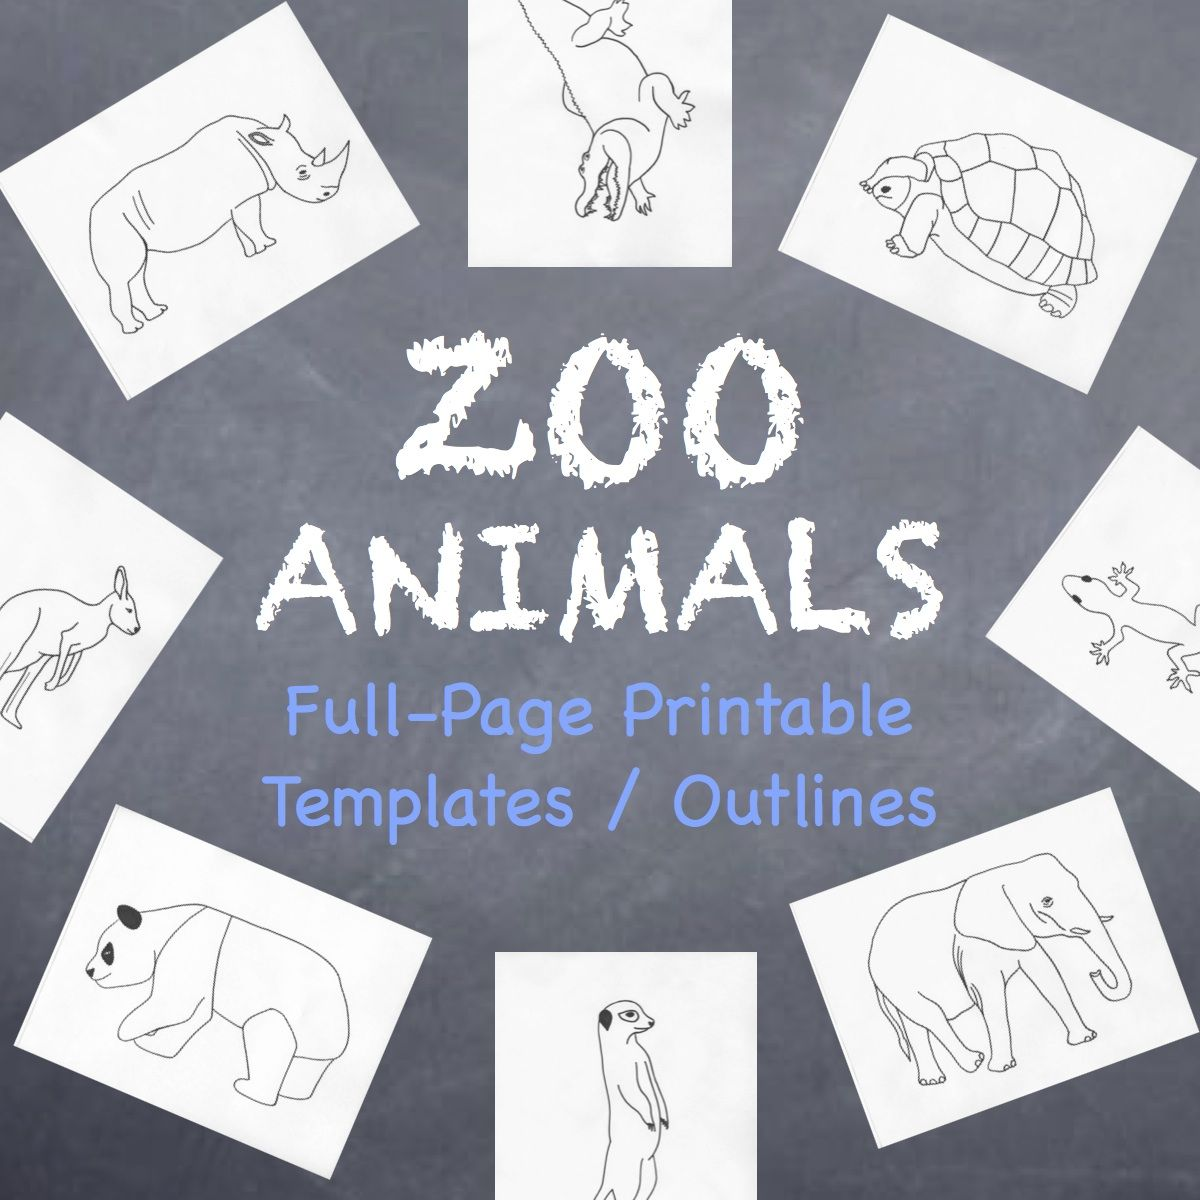 Rainforest Animals Printable Full-Page Outlines / Templates ALL ...